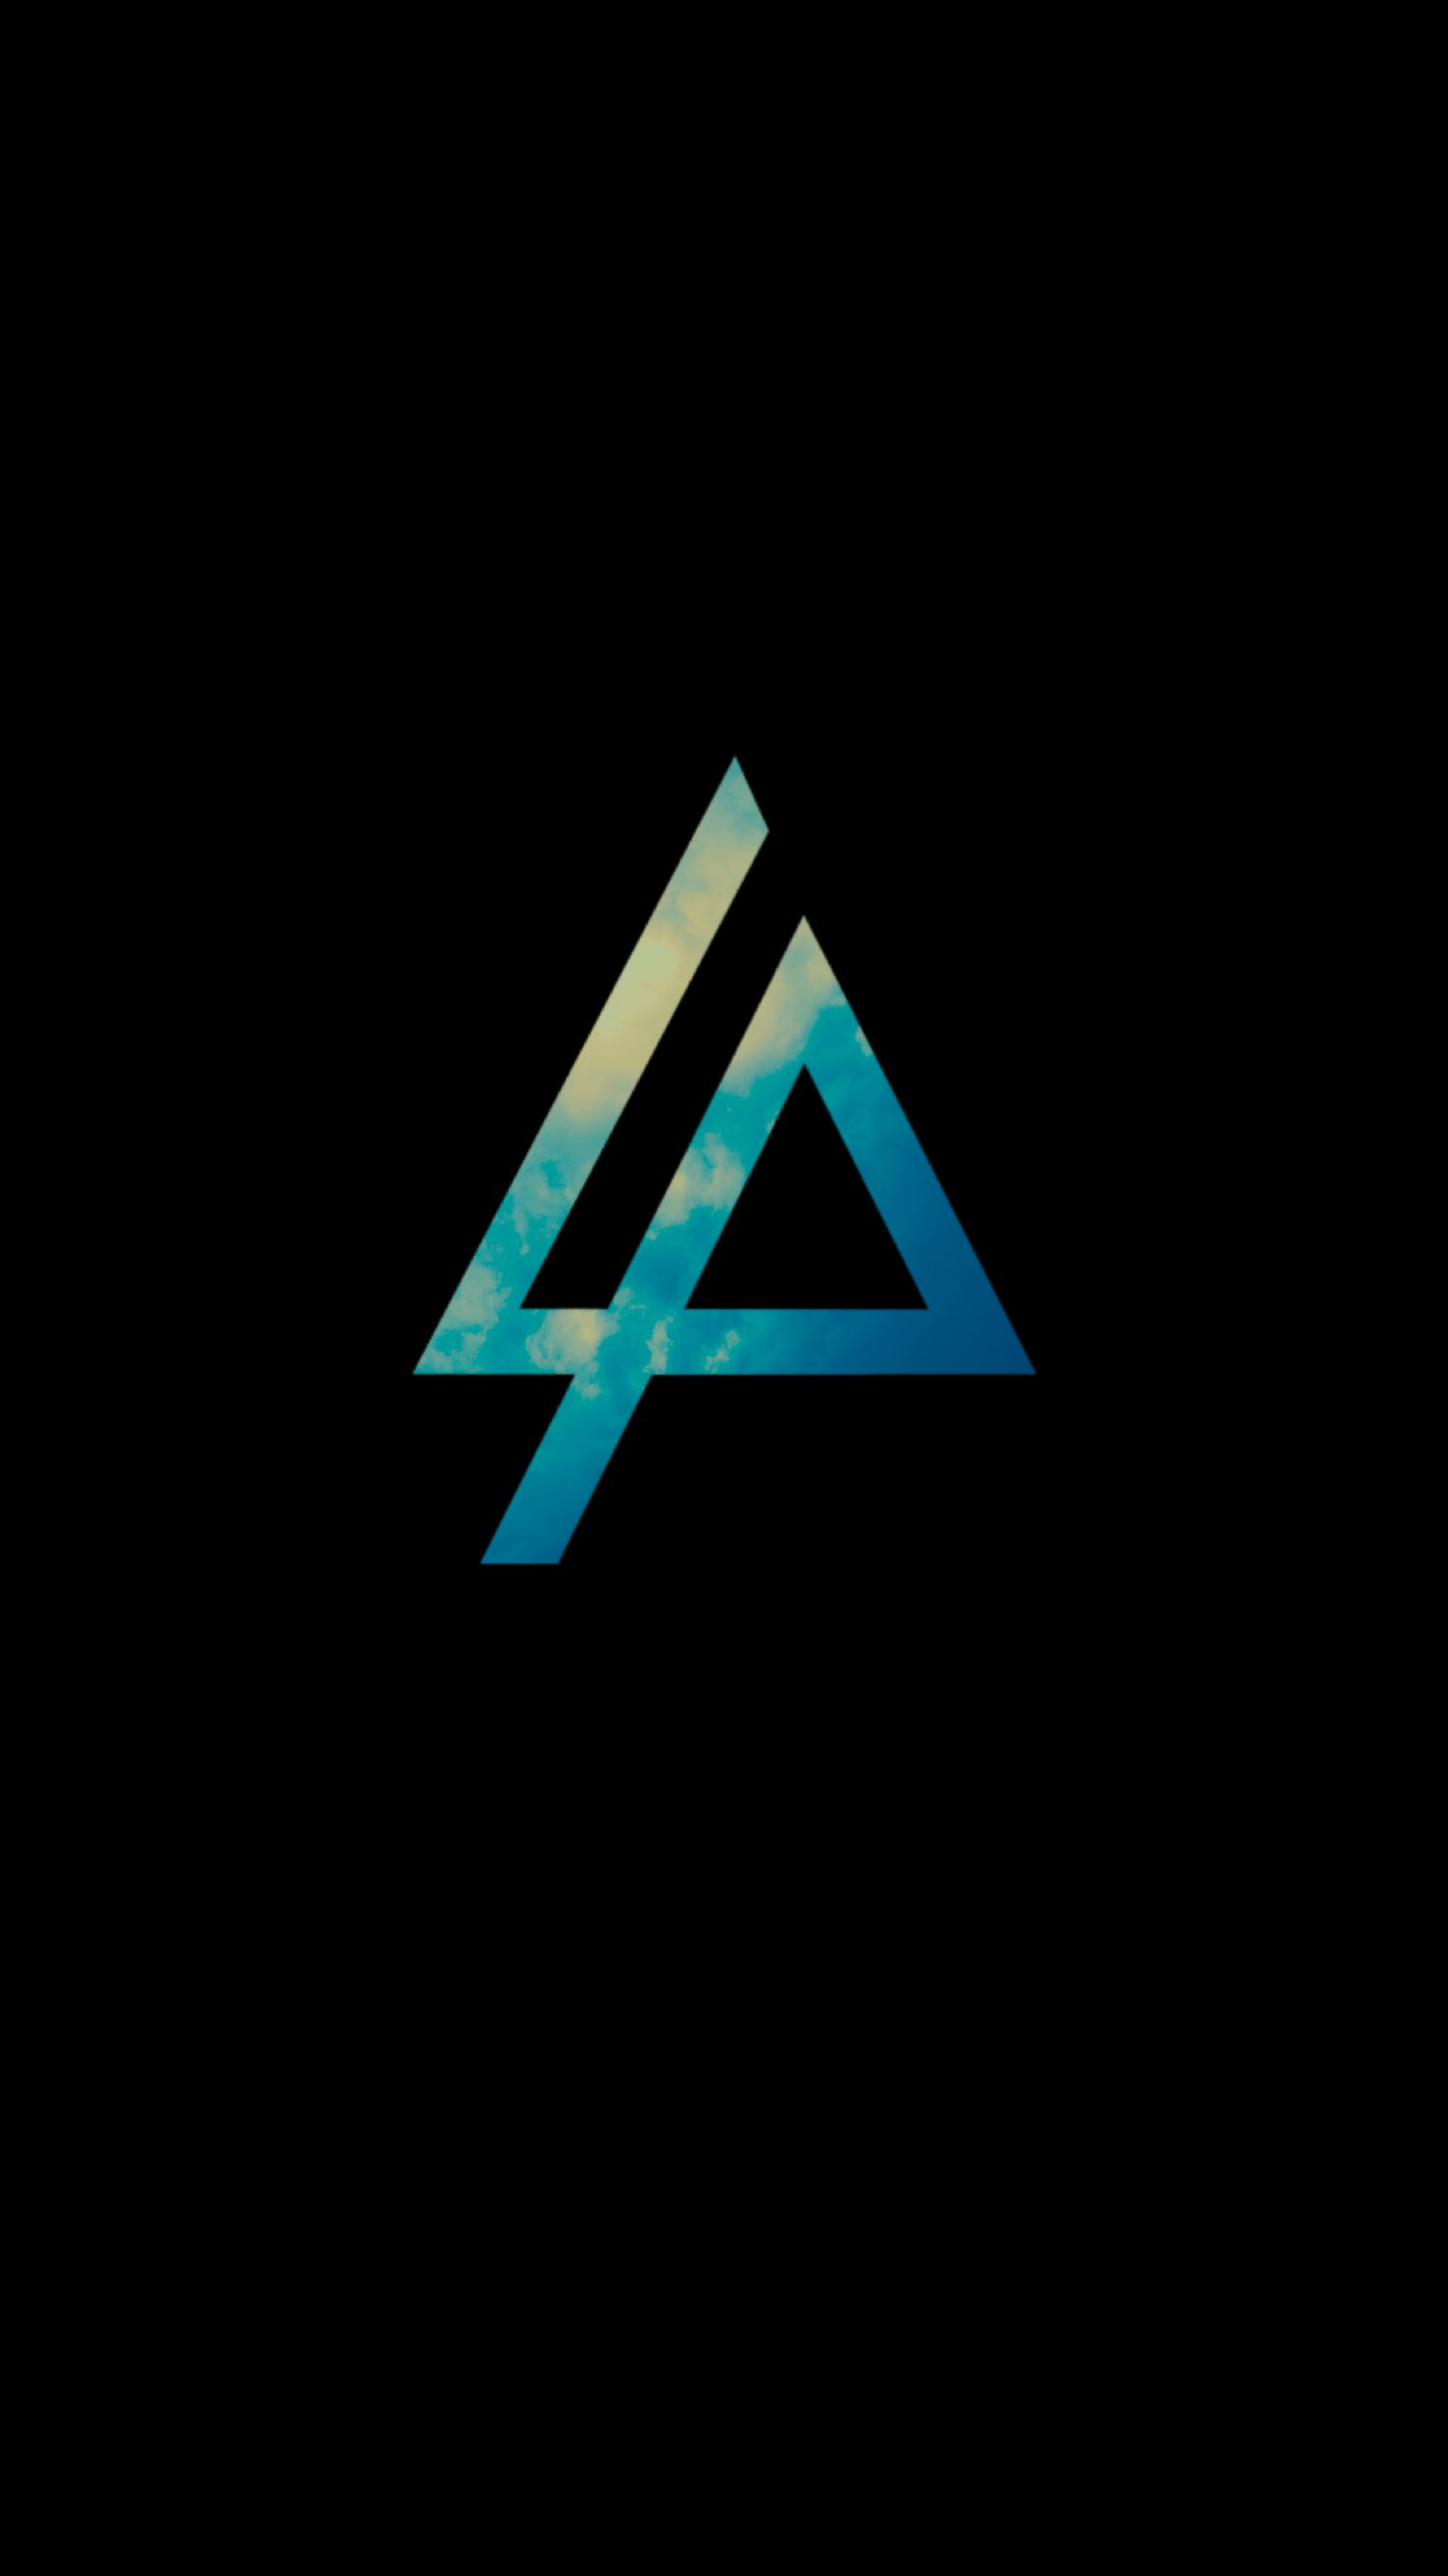 Linkin park logo linkin park wallpapers pinterest linkin park linkin park logo stopboris Image collections